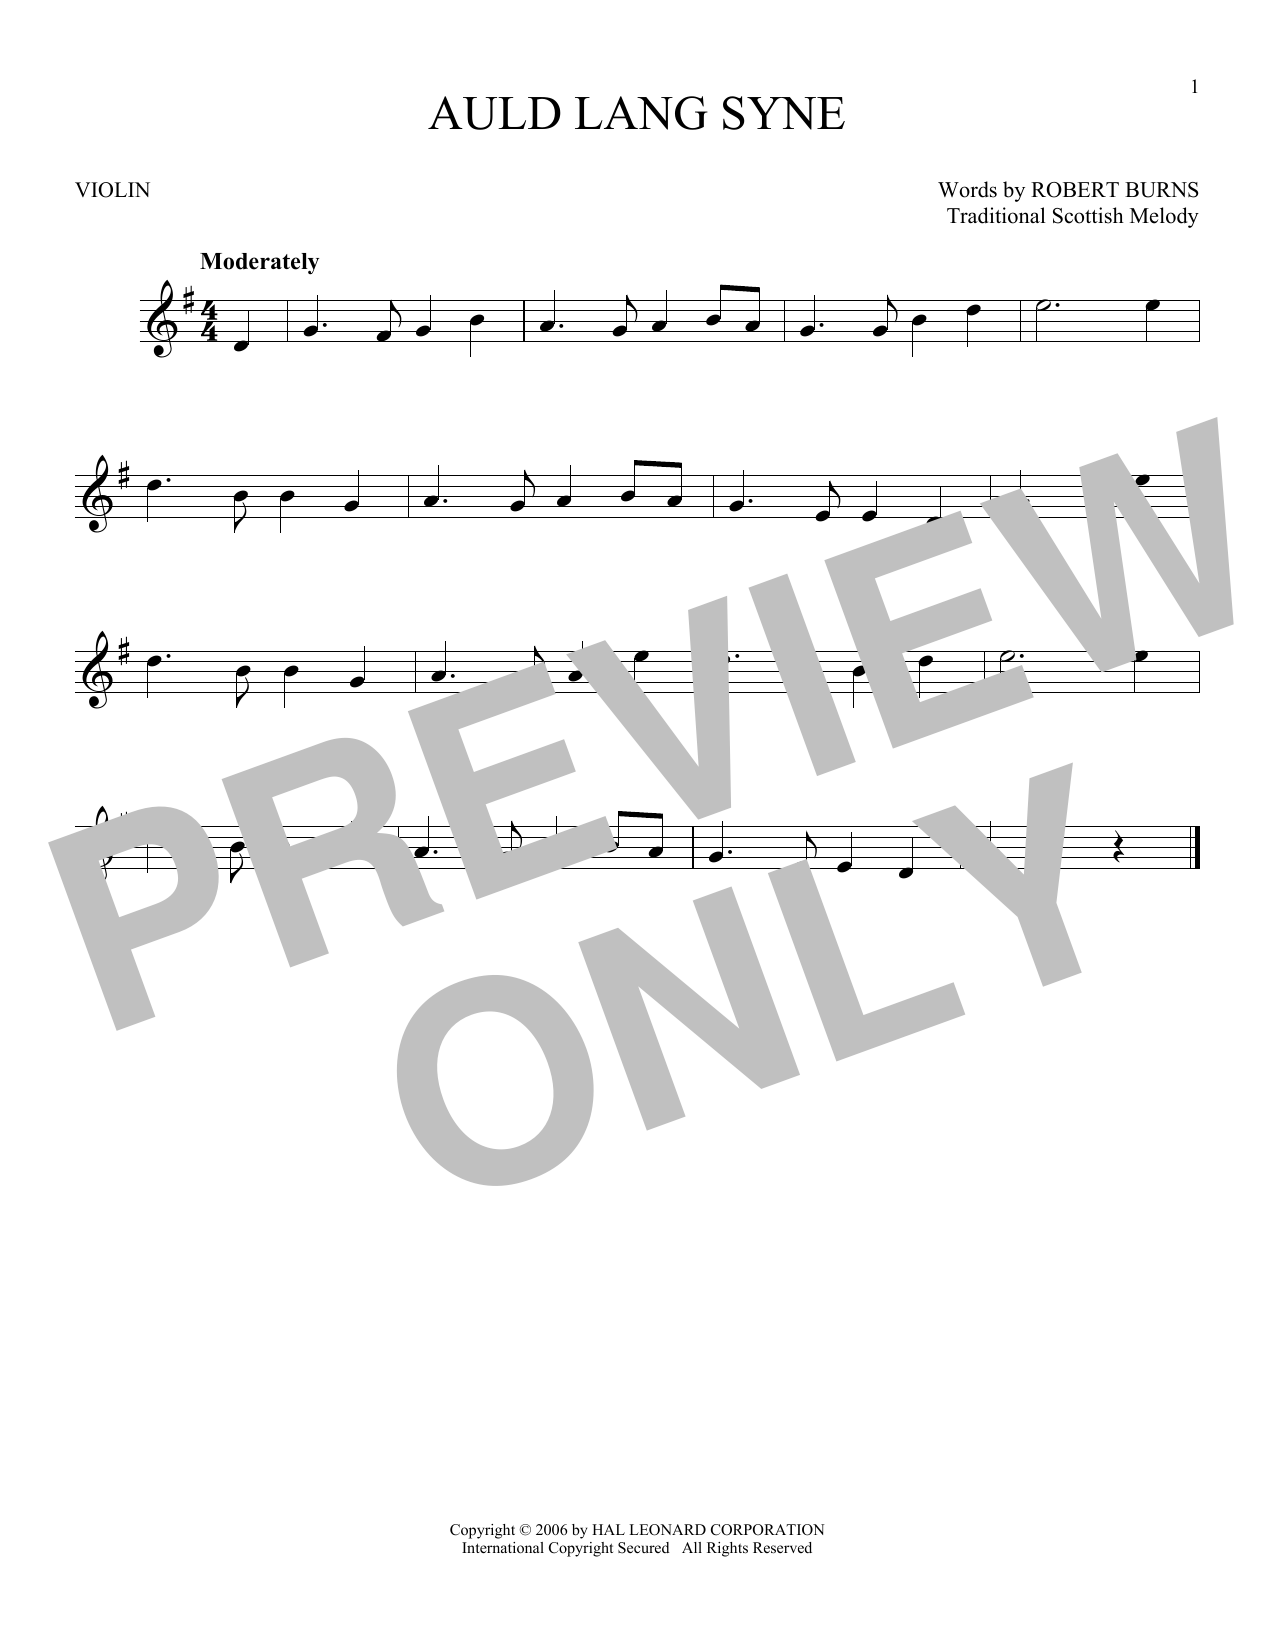 Traditional Scottish Melody Auld Lang Syne sheet music notes and chords. Download Printable PDF.